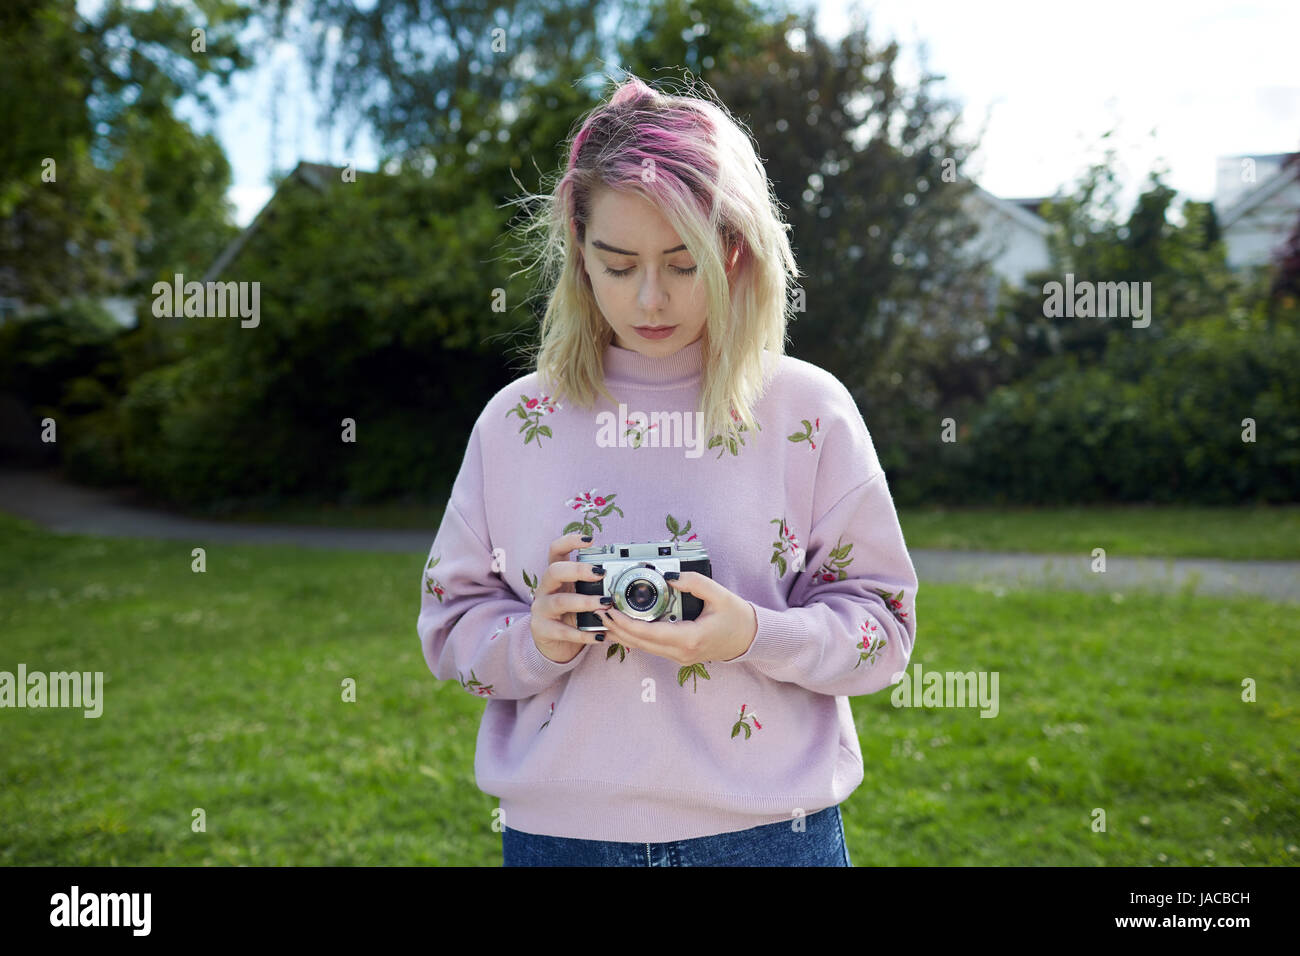 Young woman holding a 1950's Franka 35mm film camera - Stock Image